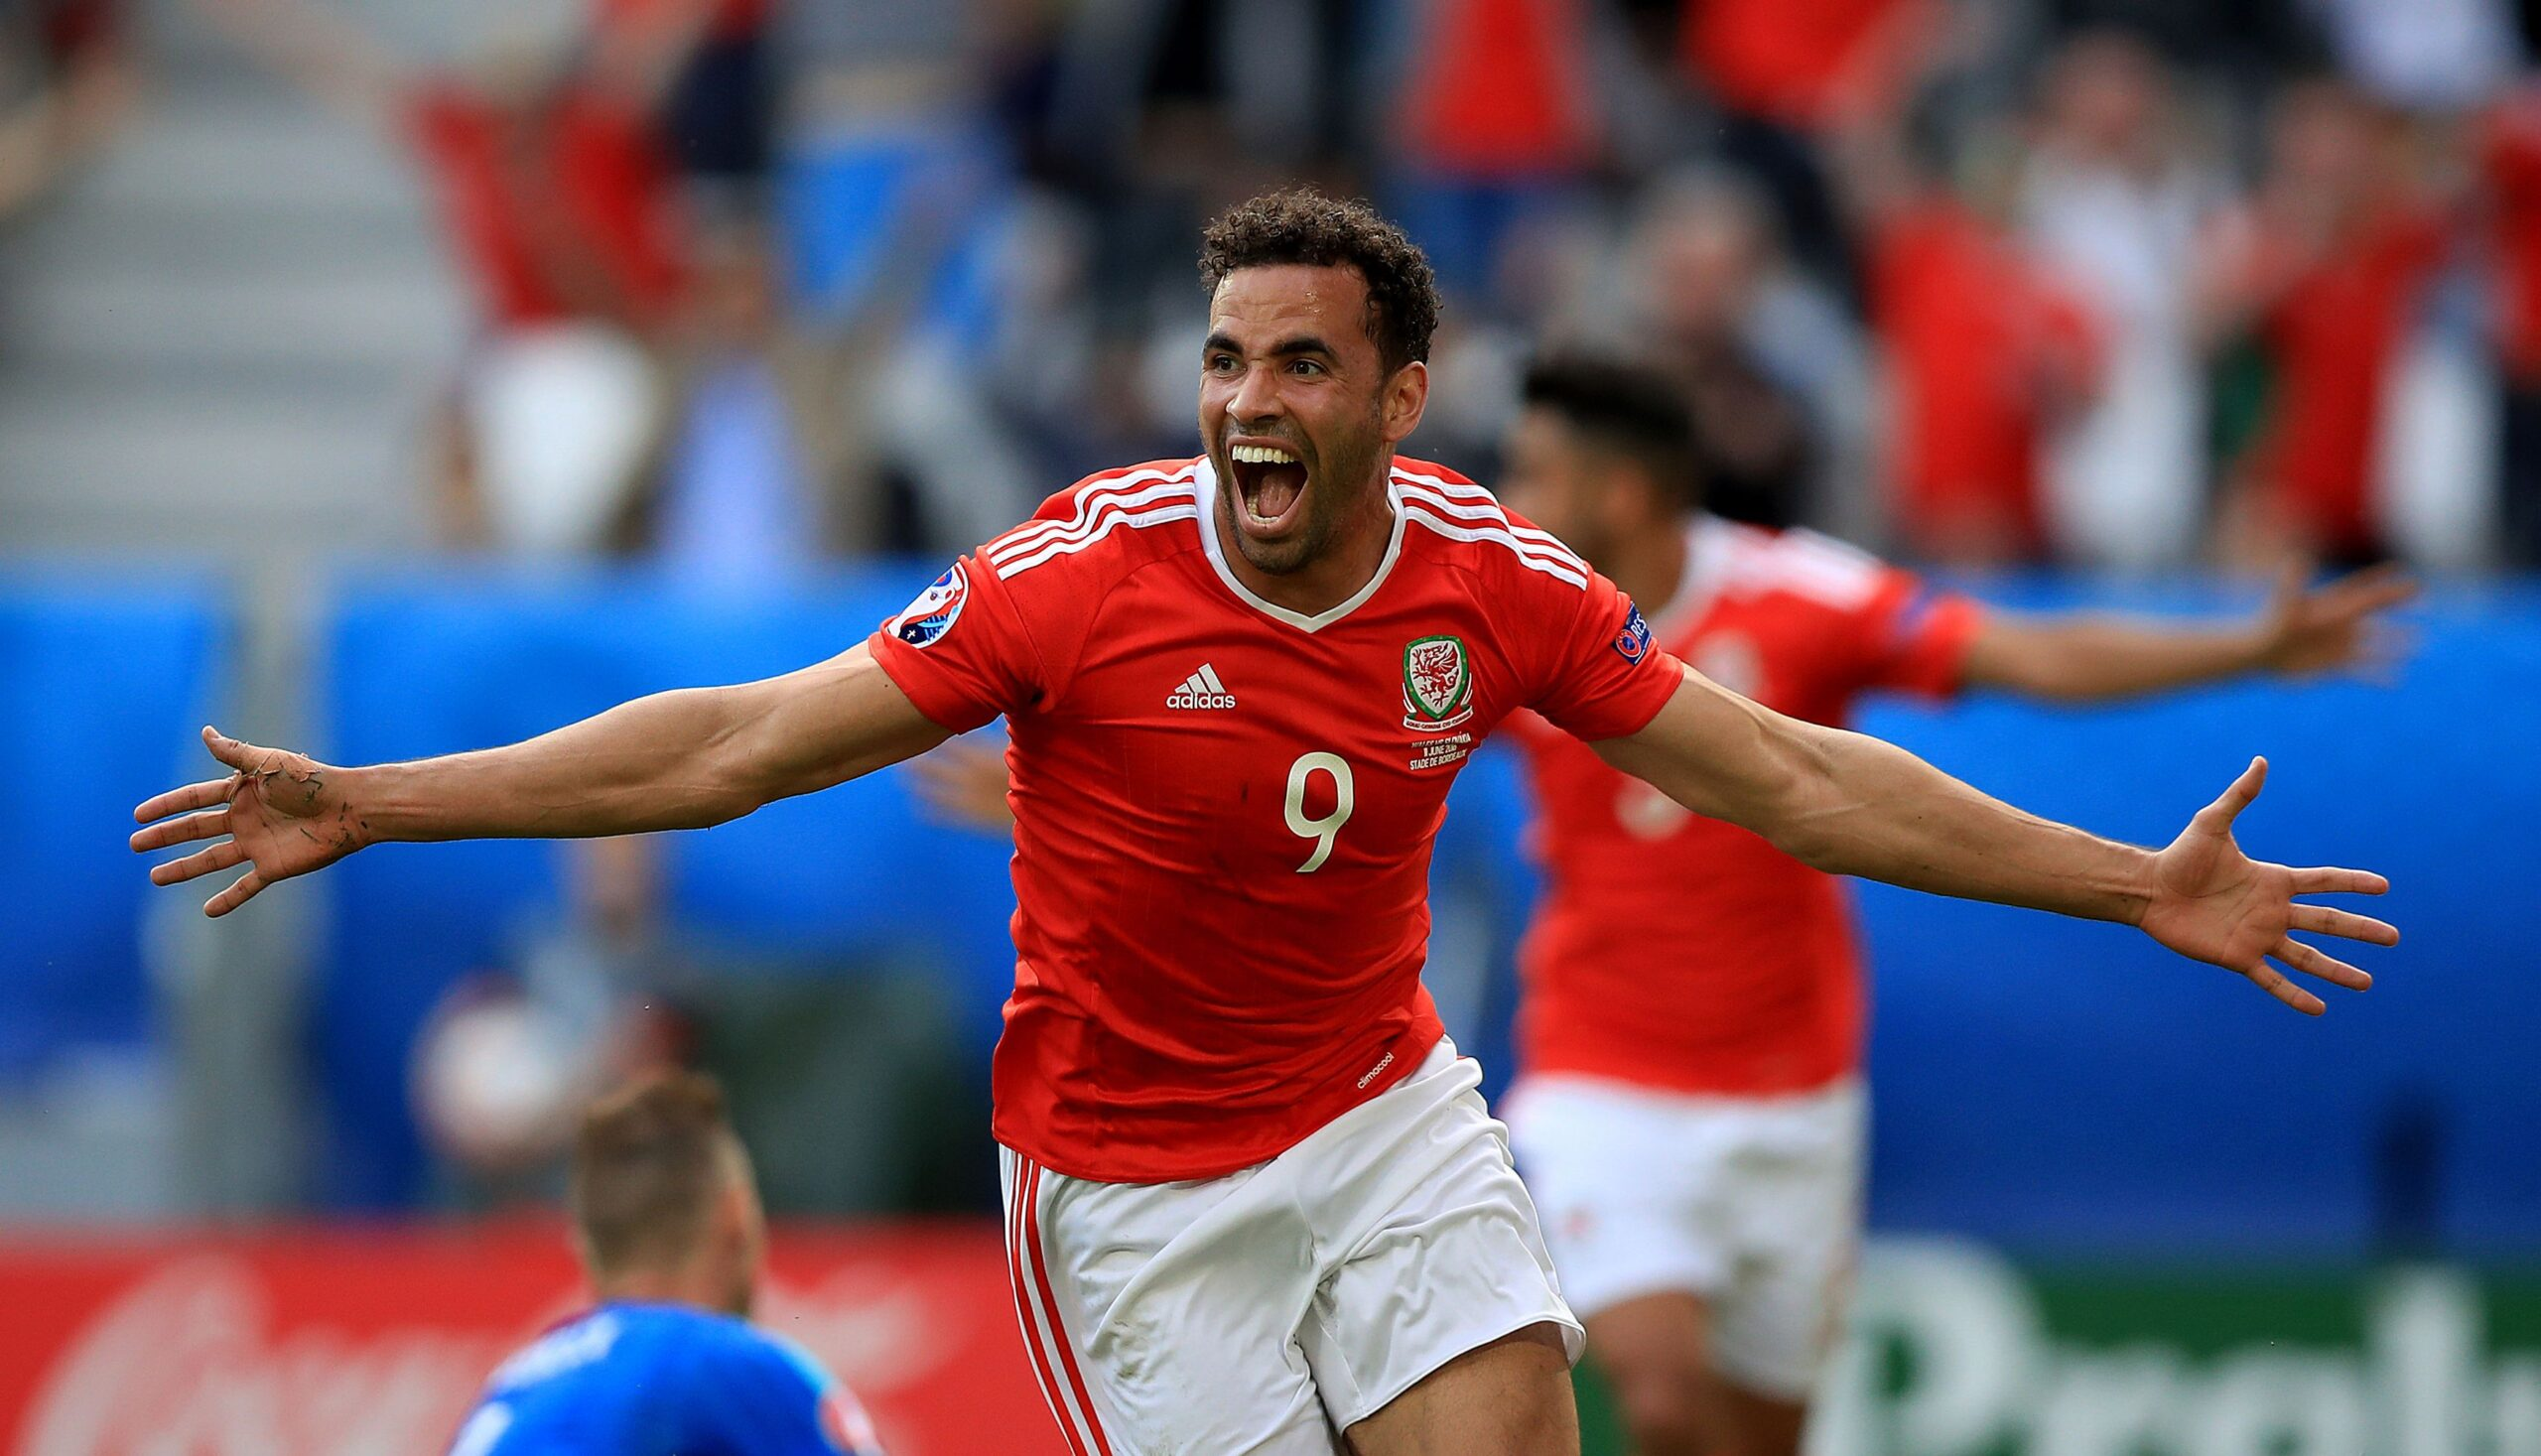 EURO 2016 - When Wales Dared to Dream (Wales 3-1 Belgium)